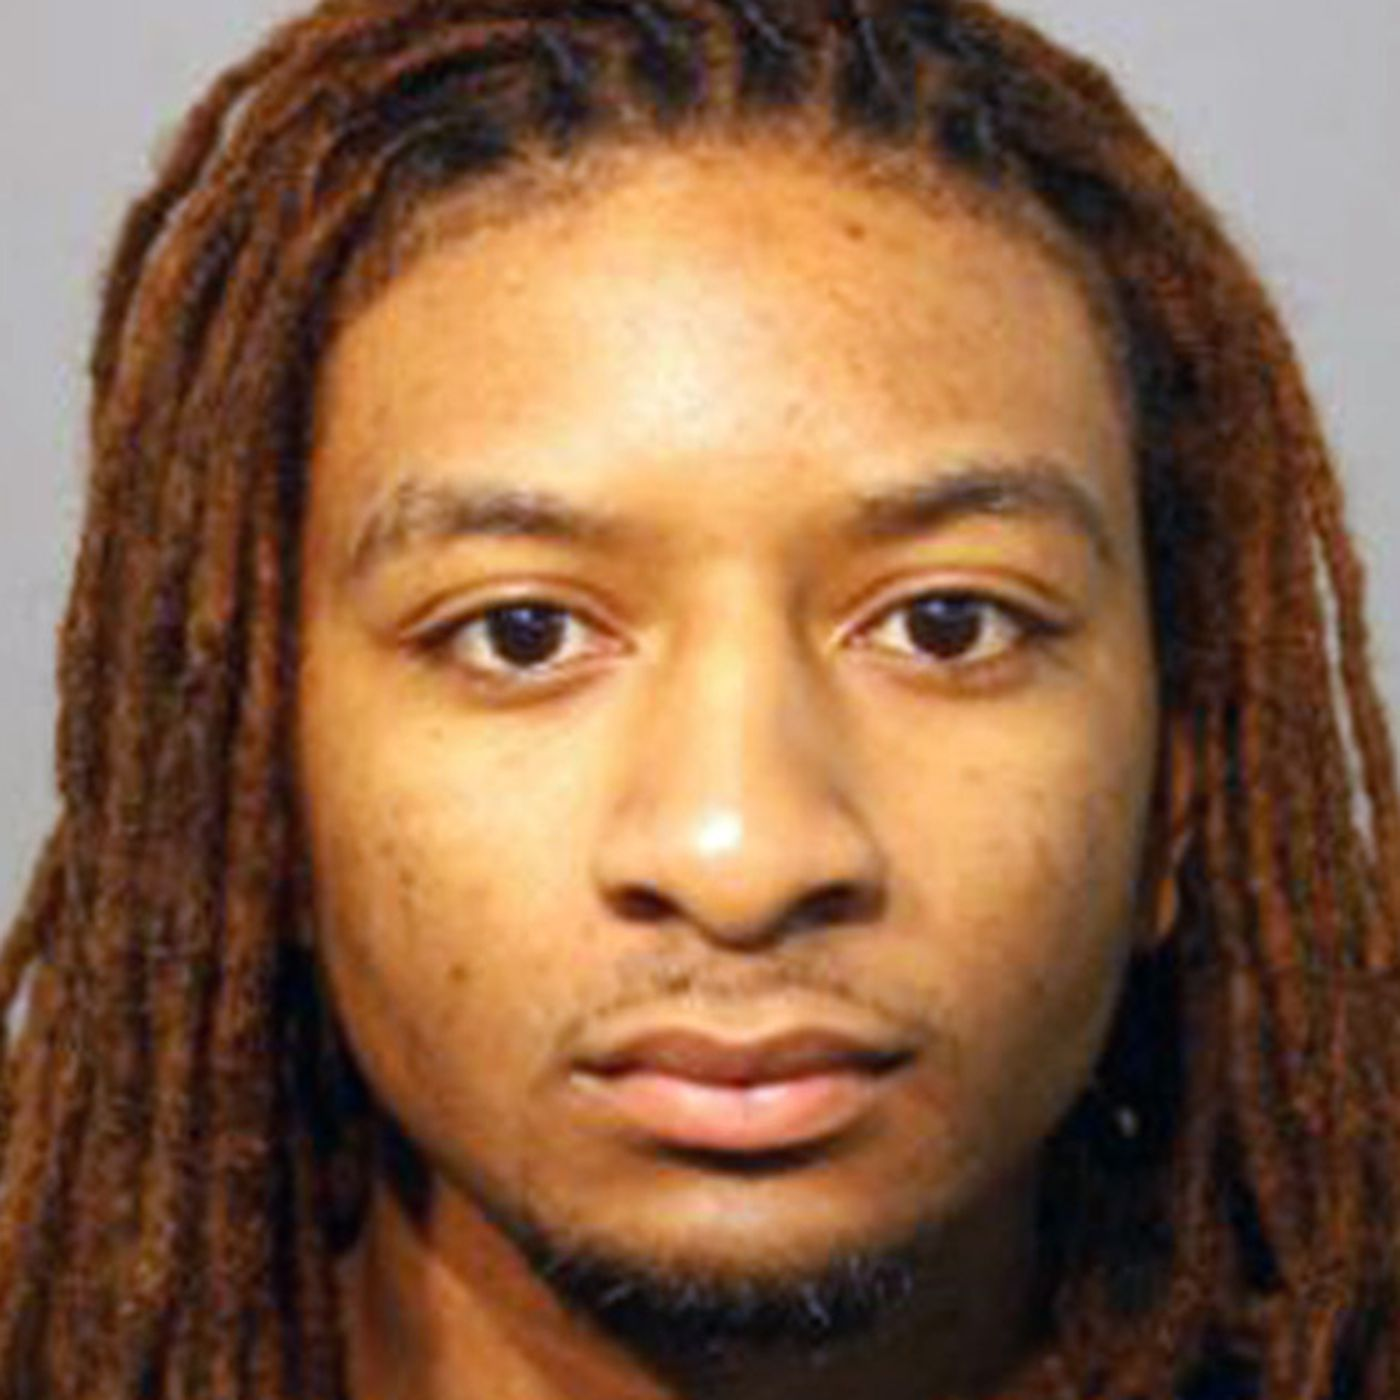 Son and hitman found guilty in murder-for-hire of Uptown